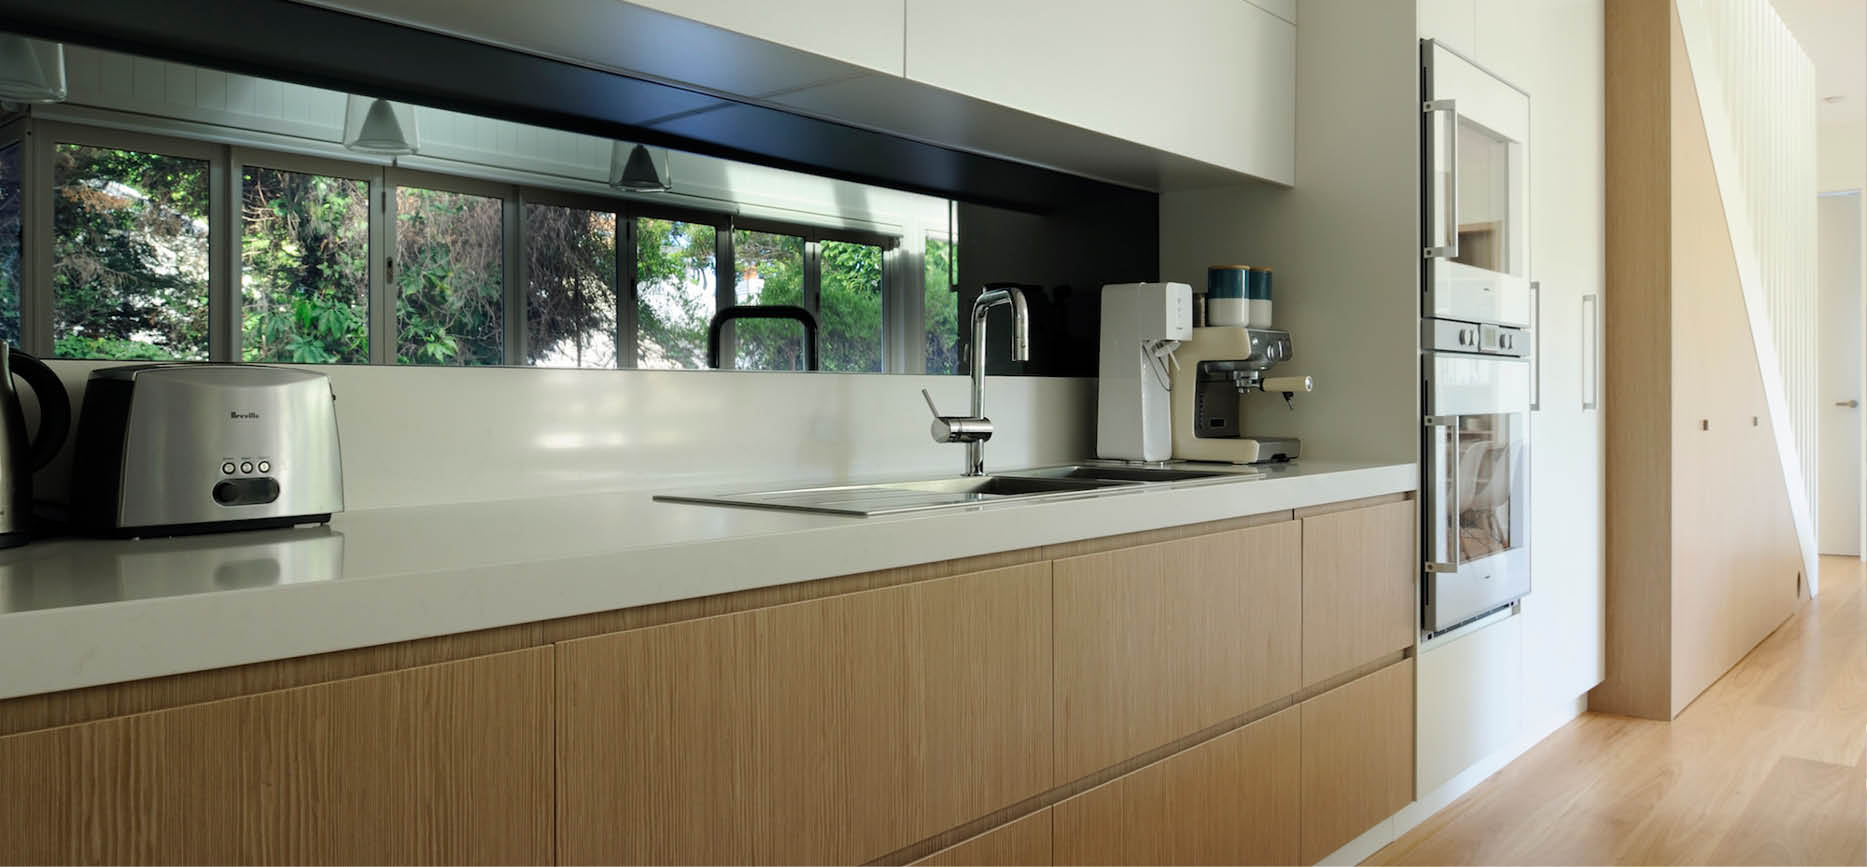 Wholesale Kitchens Sydney | Save On Your New Kitchen | The Joinery